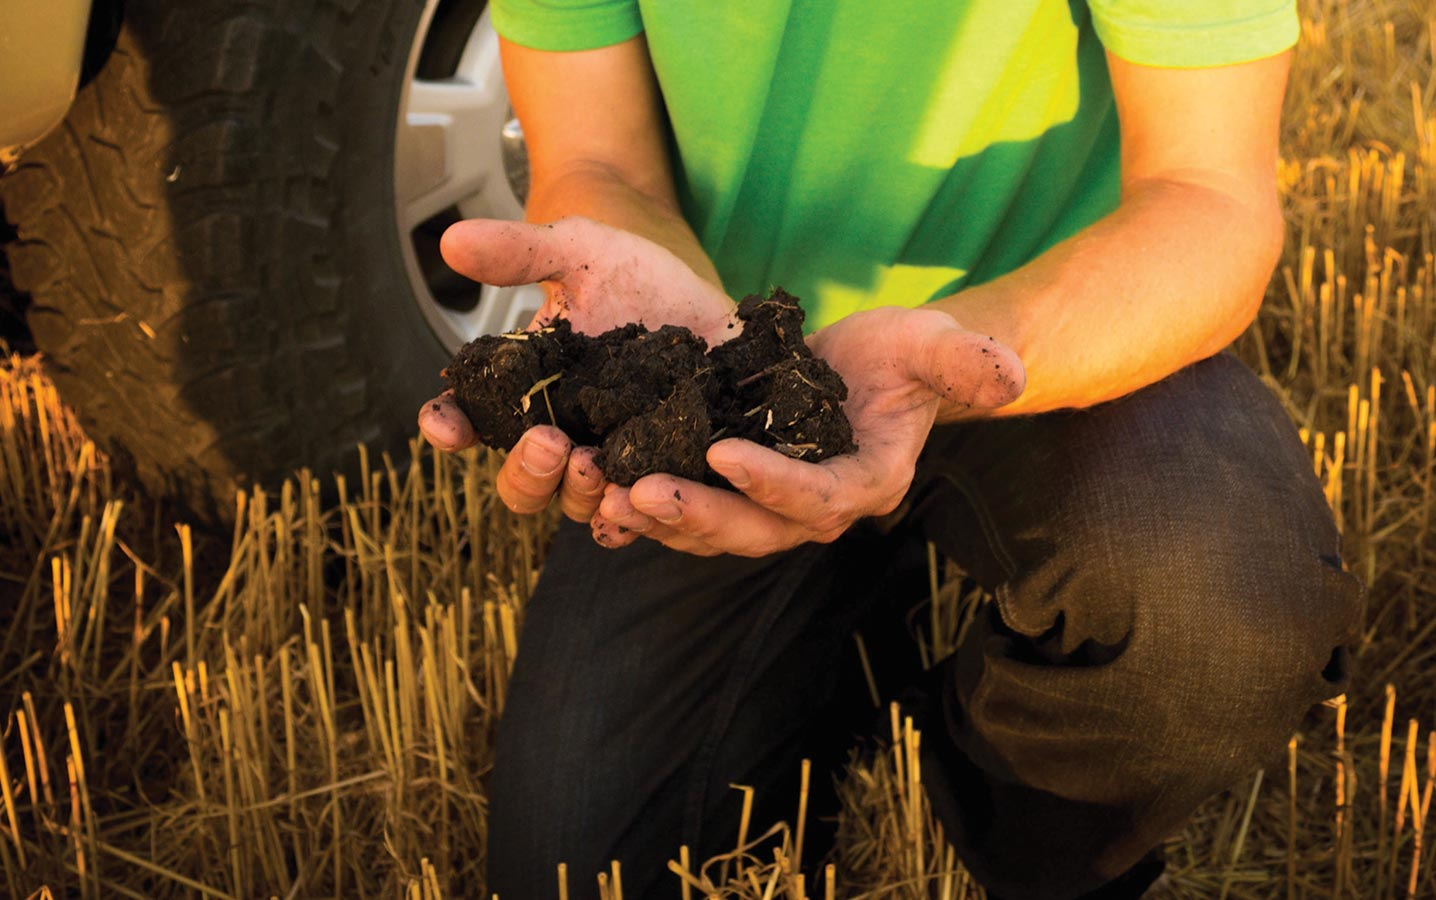 Soil characteristics stay fairly consistent so don't need to be checked too often, but use these tests to set expectations for new fields or fields that haven't been tested recently.